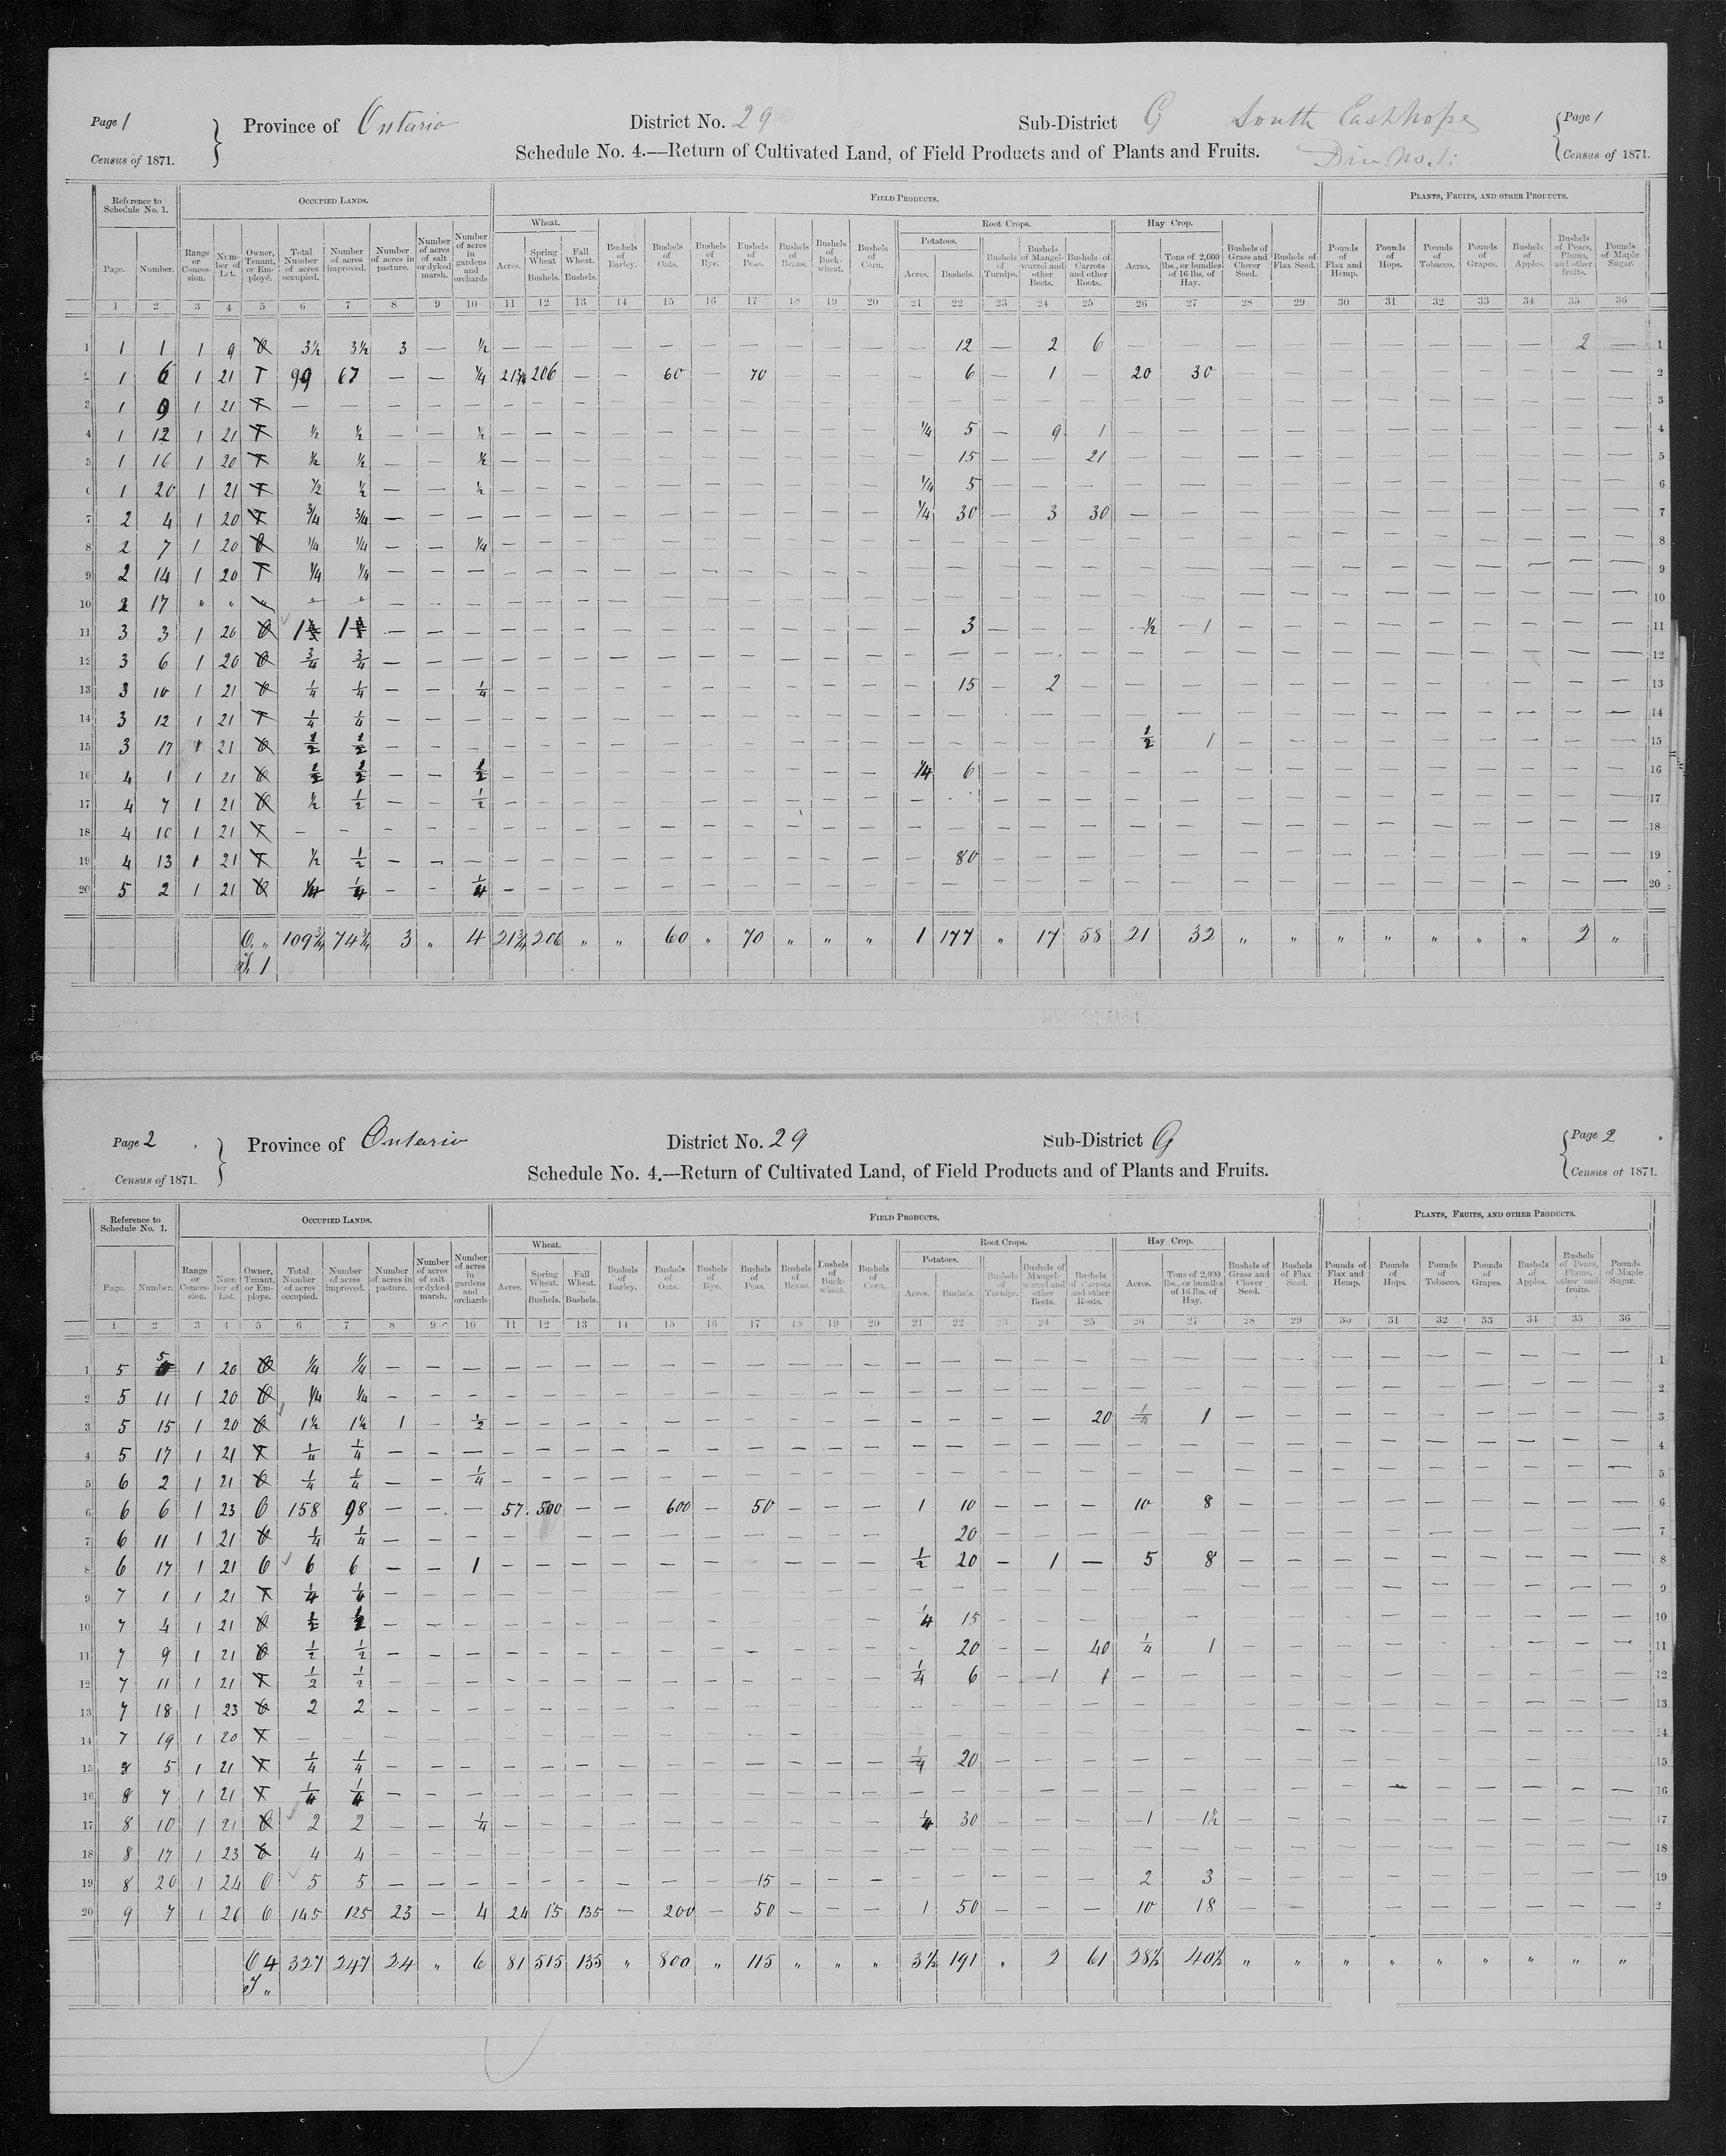 Title: Census of Canada, 1871 - Mikan Number: 142105 - Microform: c-9940